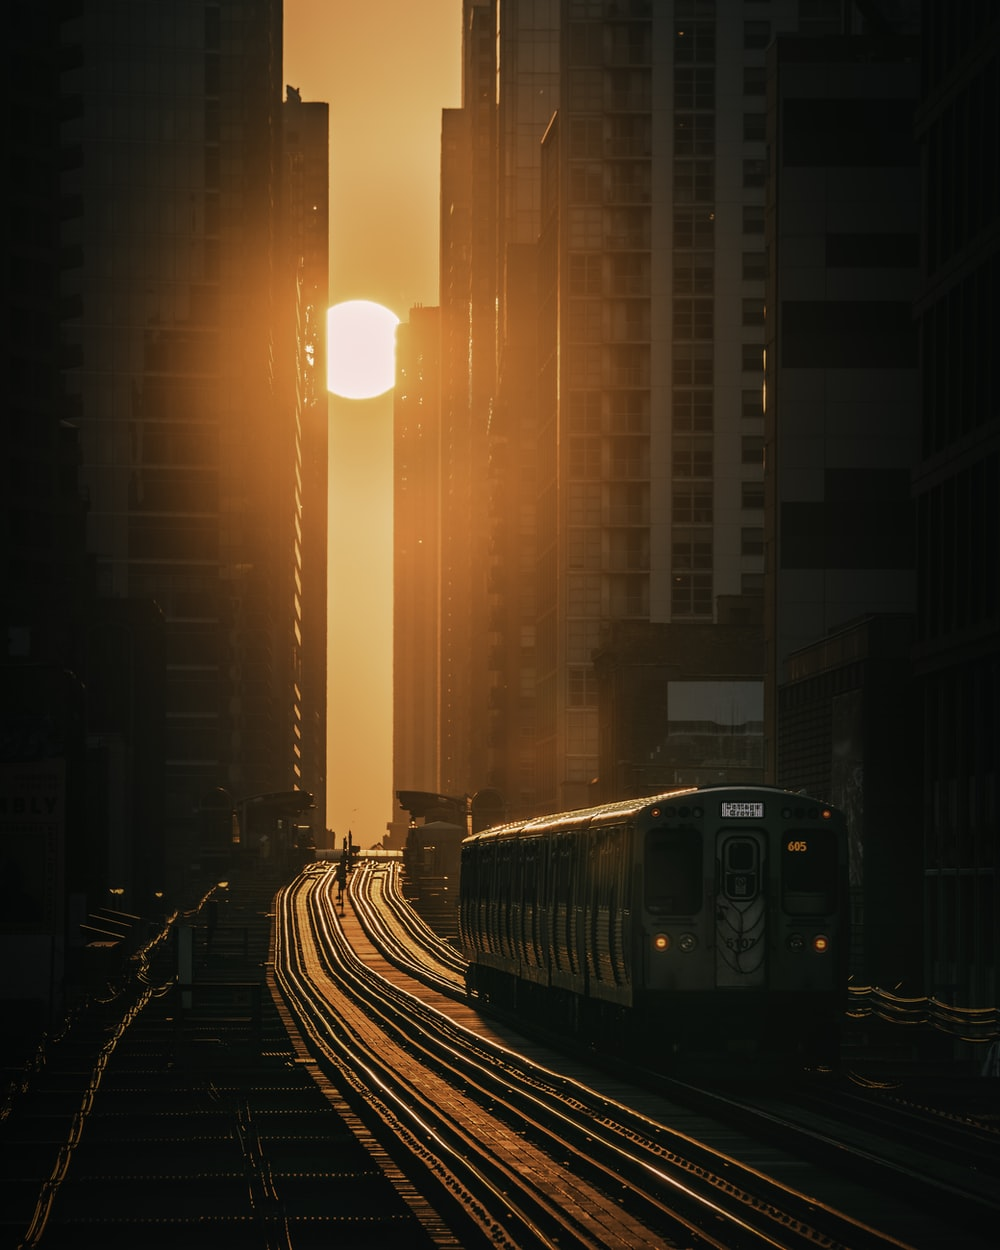 train on rail road during night time